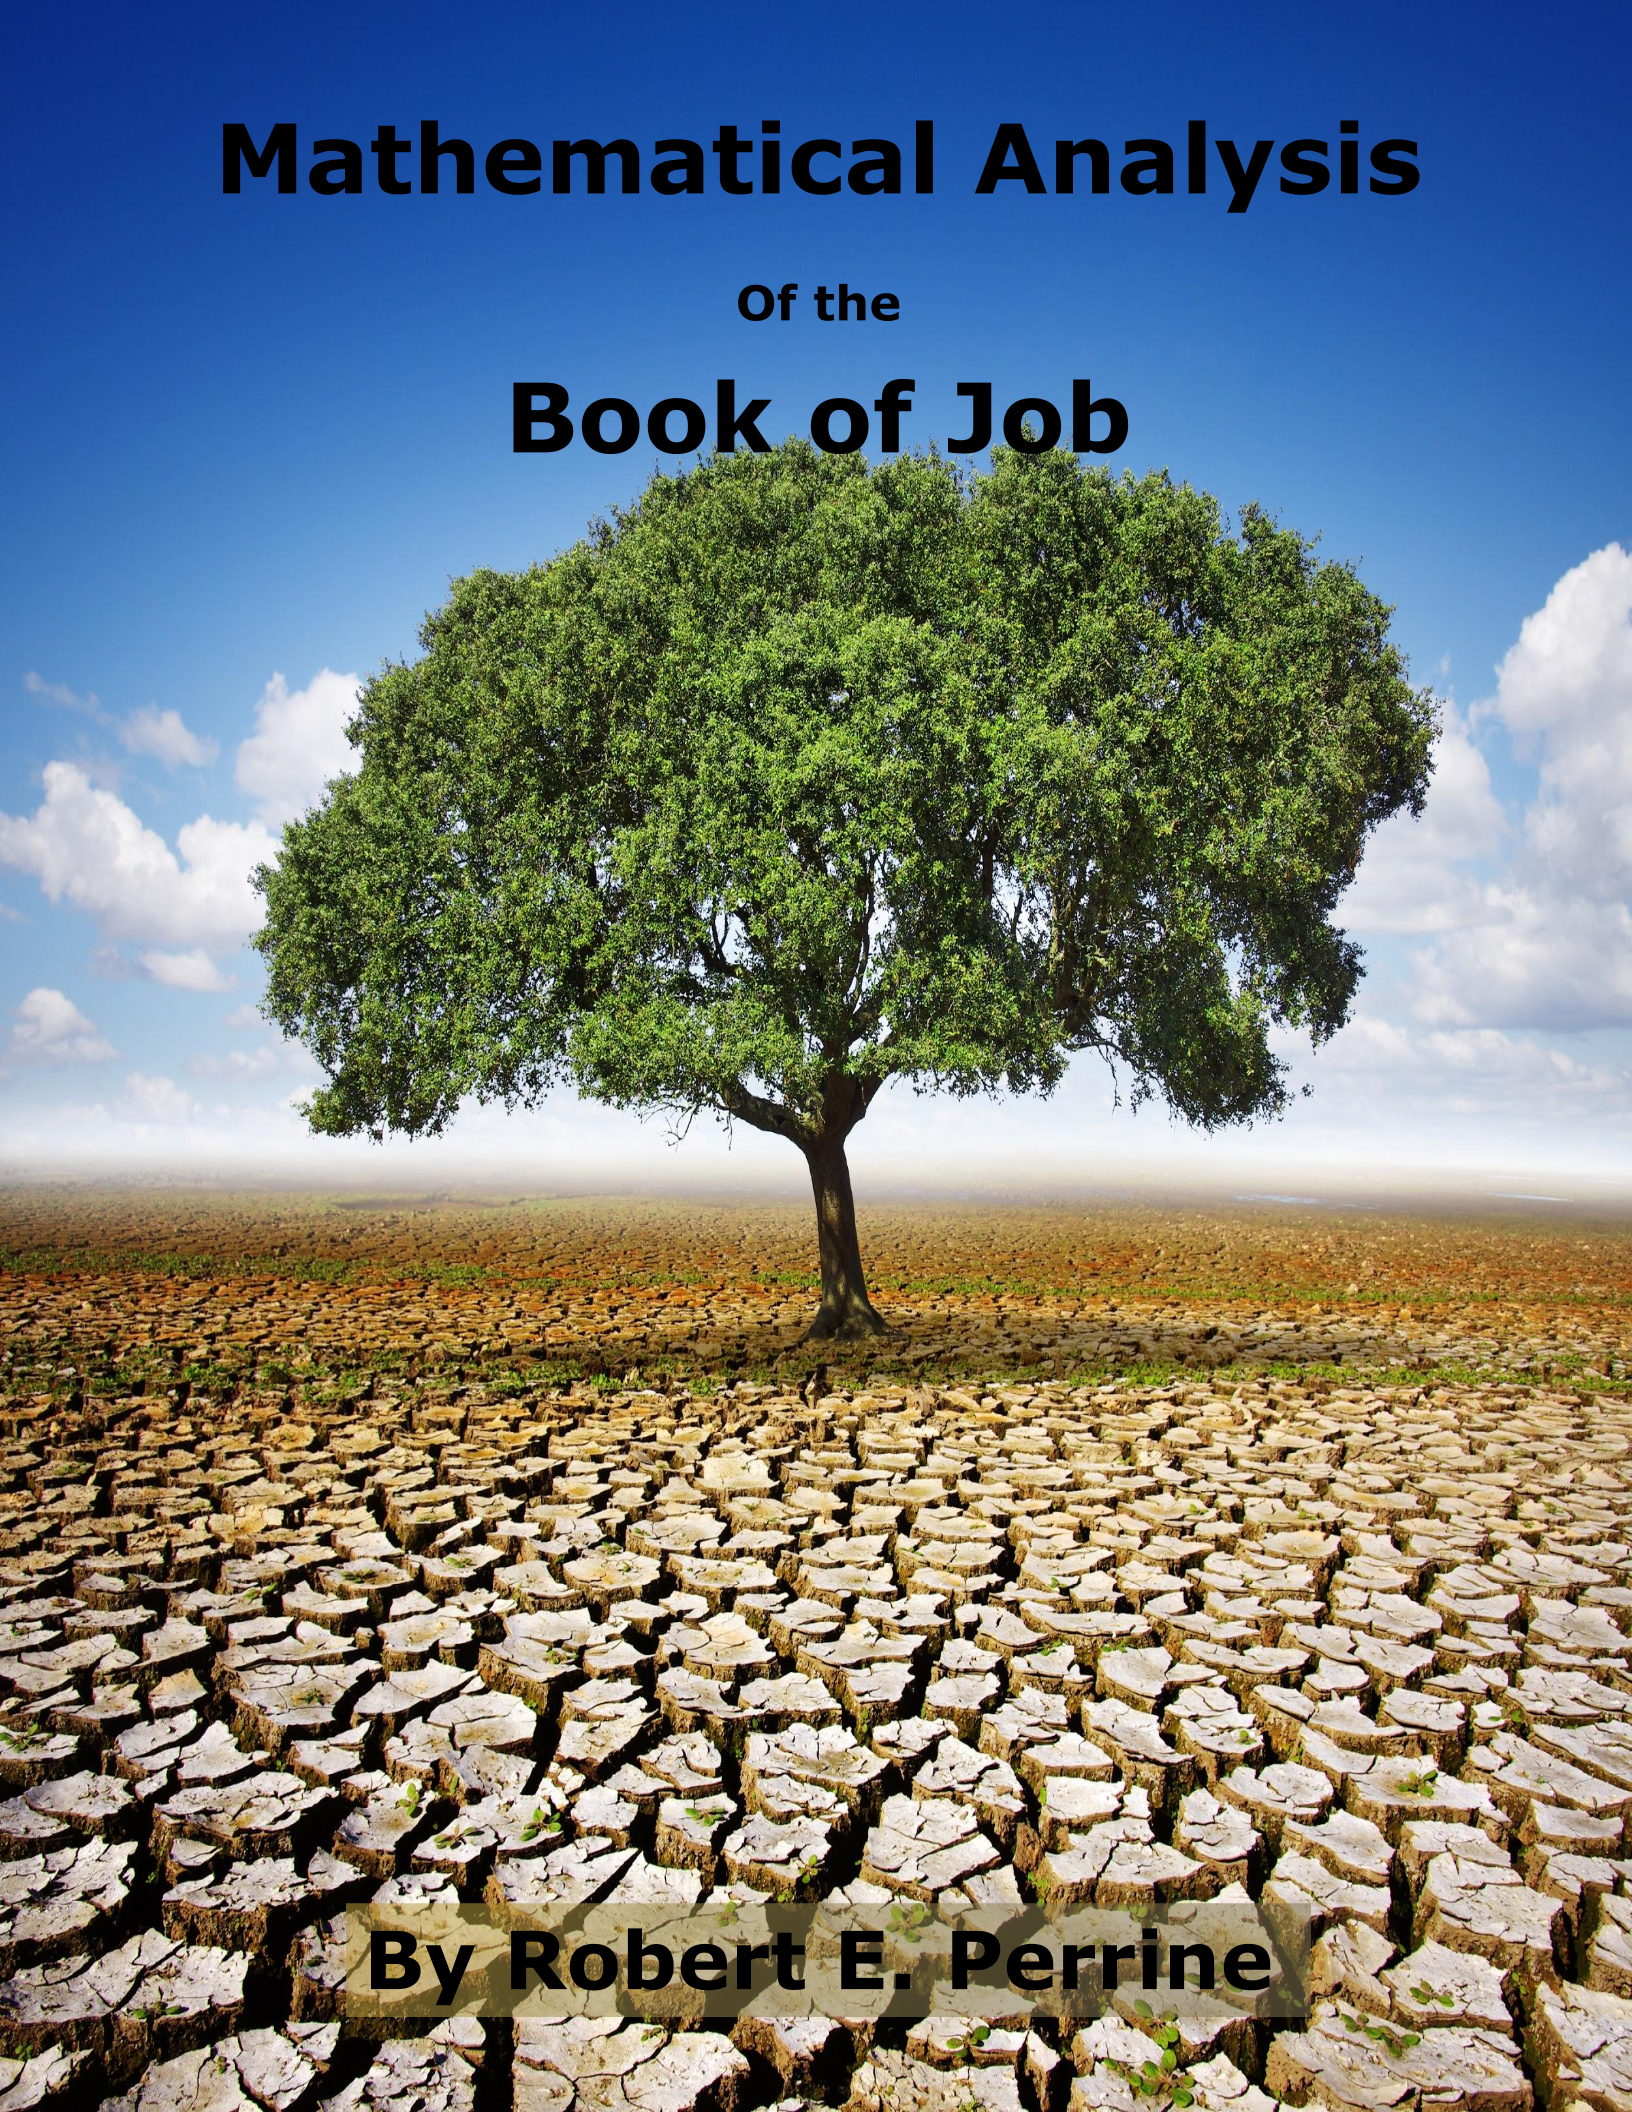 Mathematical Analysis of the Book of Job, an Ebook by Robert Perrine